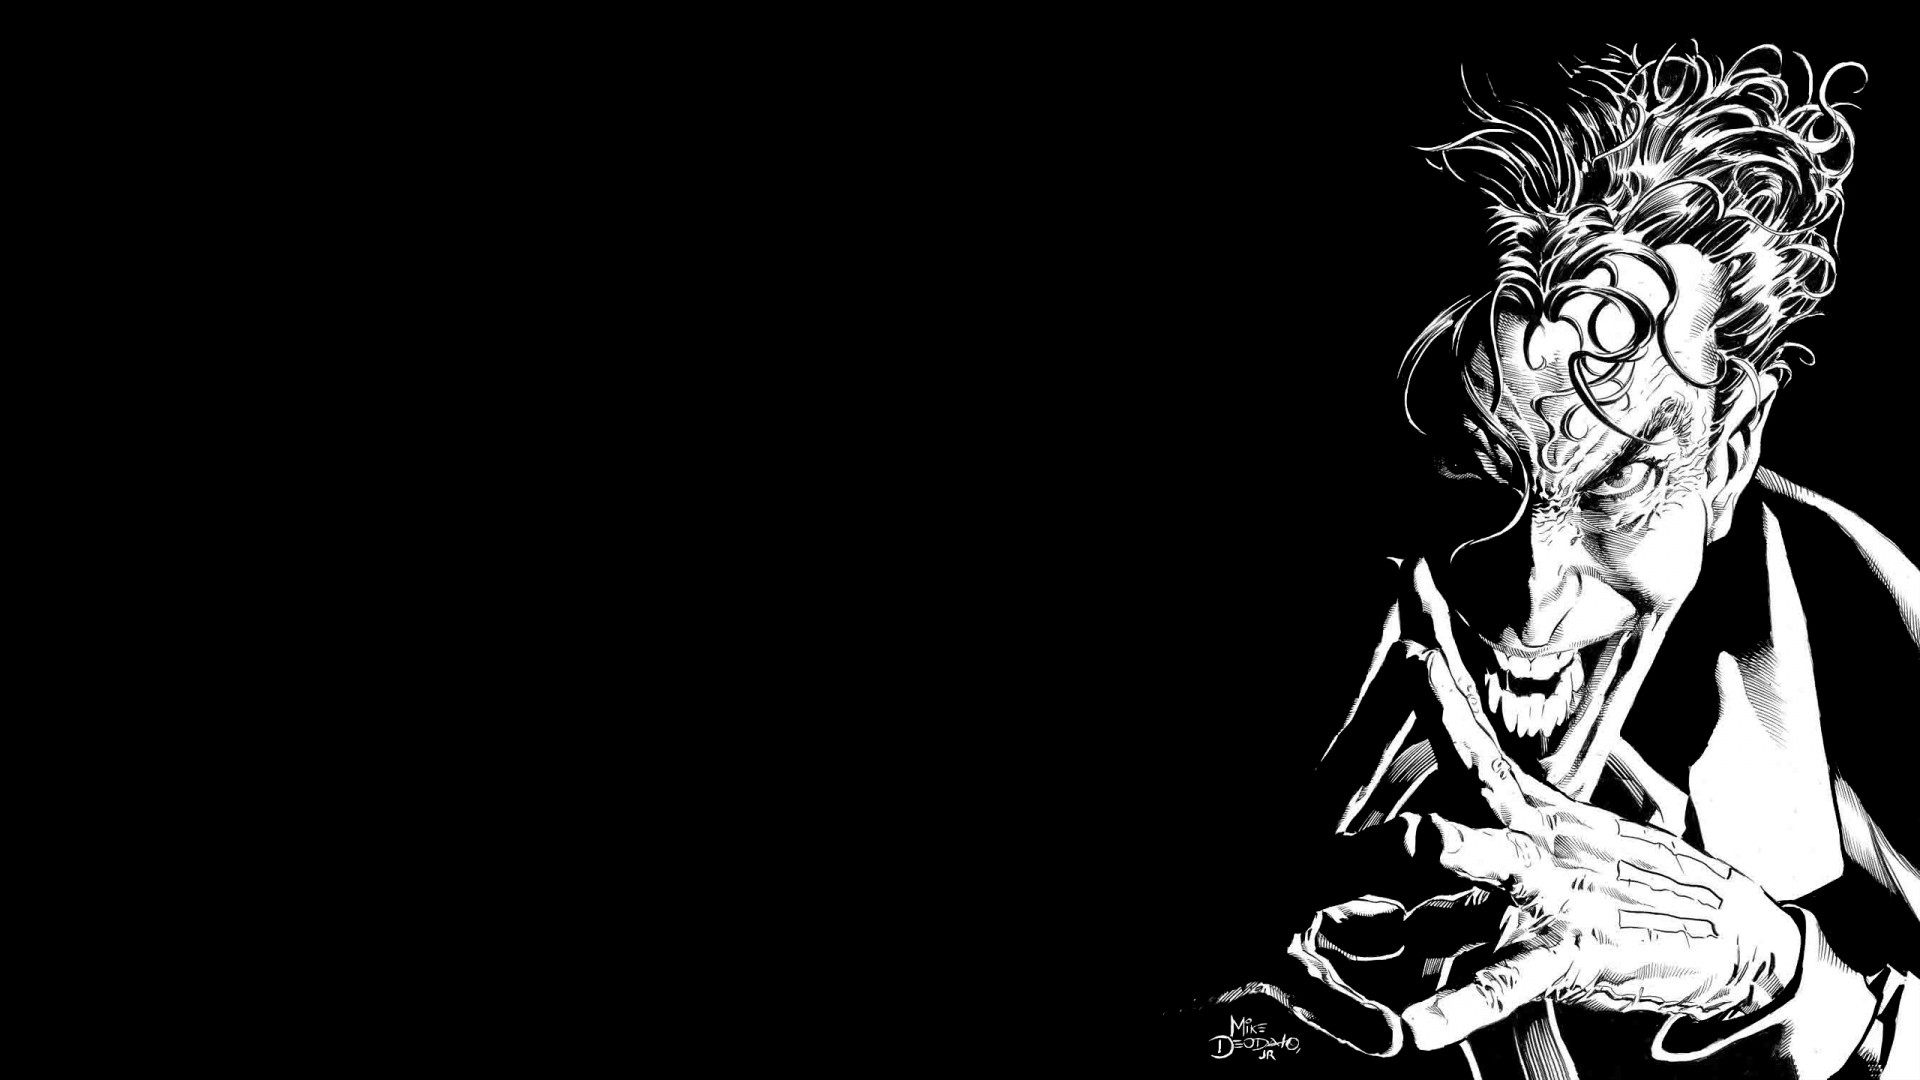 Res: 1920x1080, Black White Joker Wallpaper Android Wallpaper